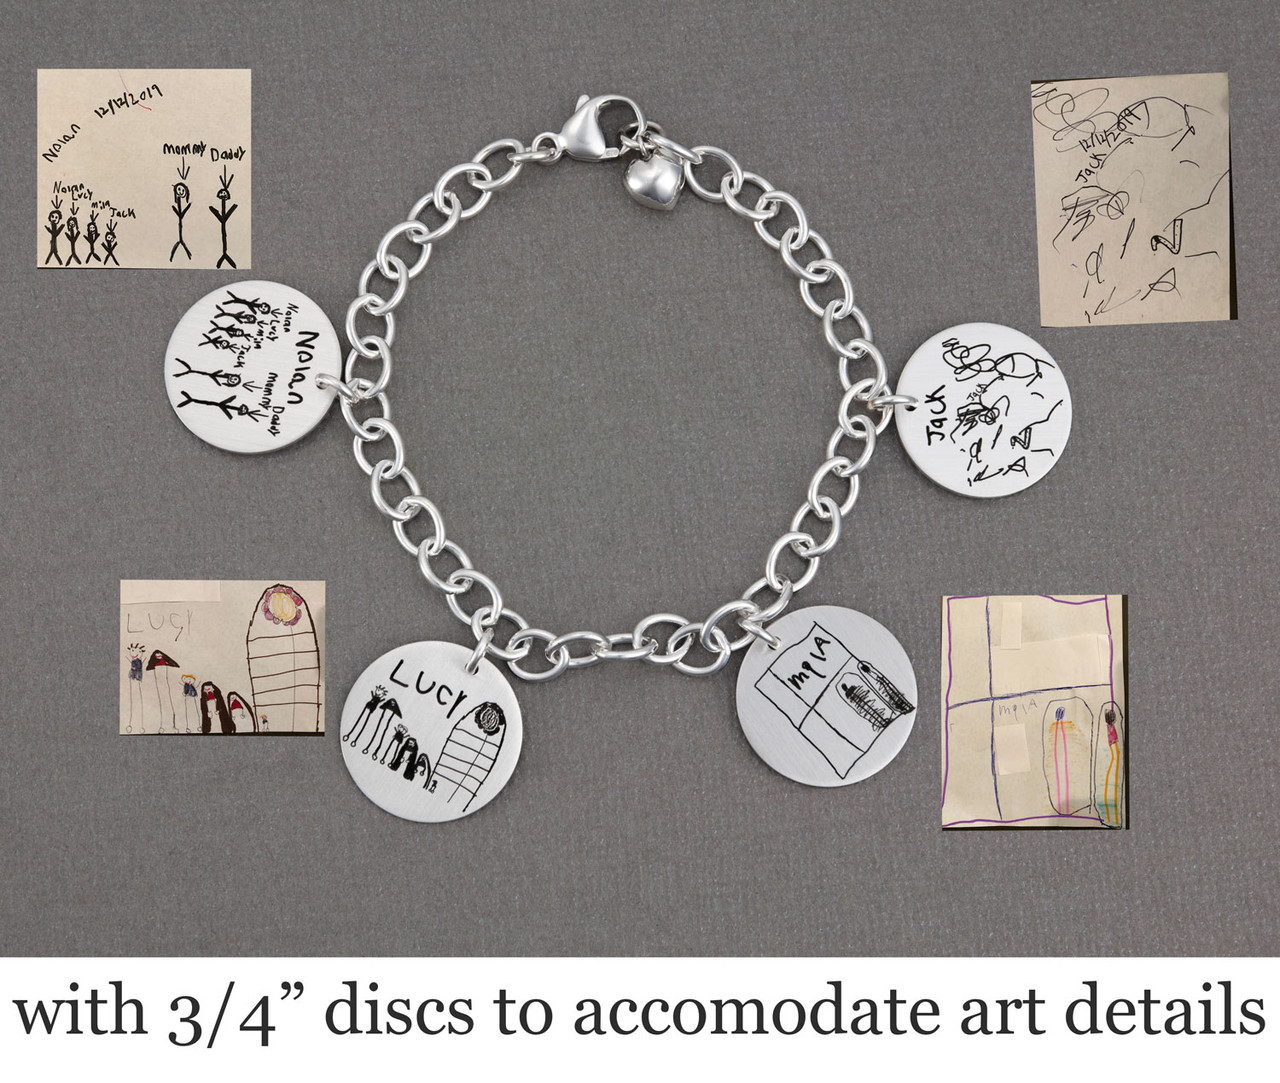 Custom Silver Handwriting Bracelet with kids' artwork, shown with the original artwork, with larger 3/4 inch discs